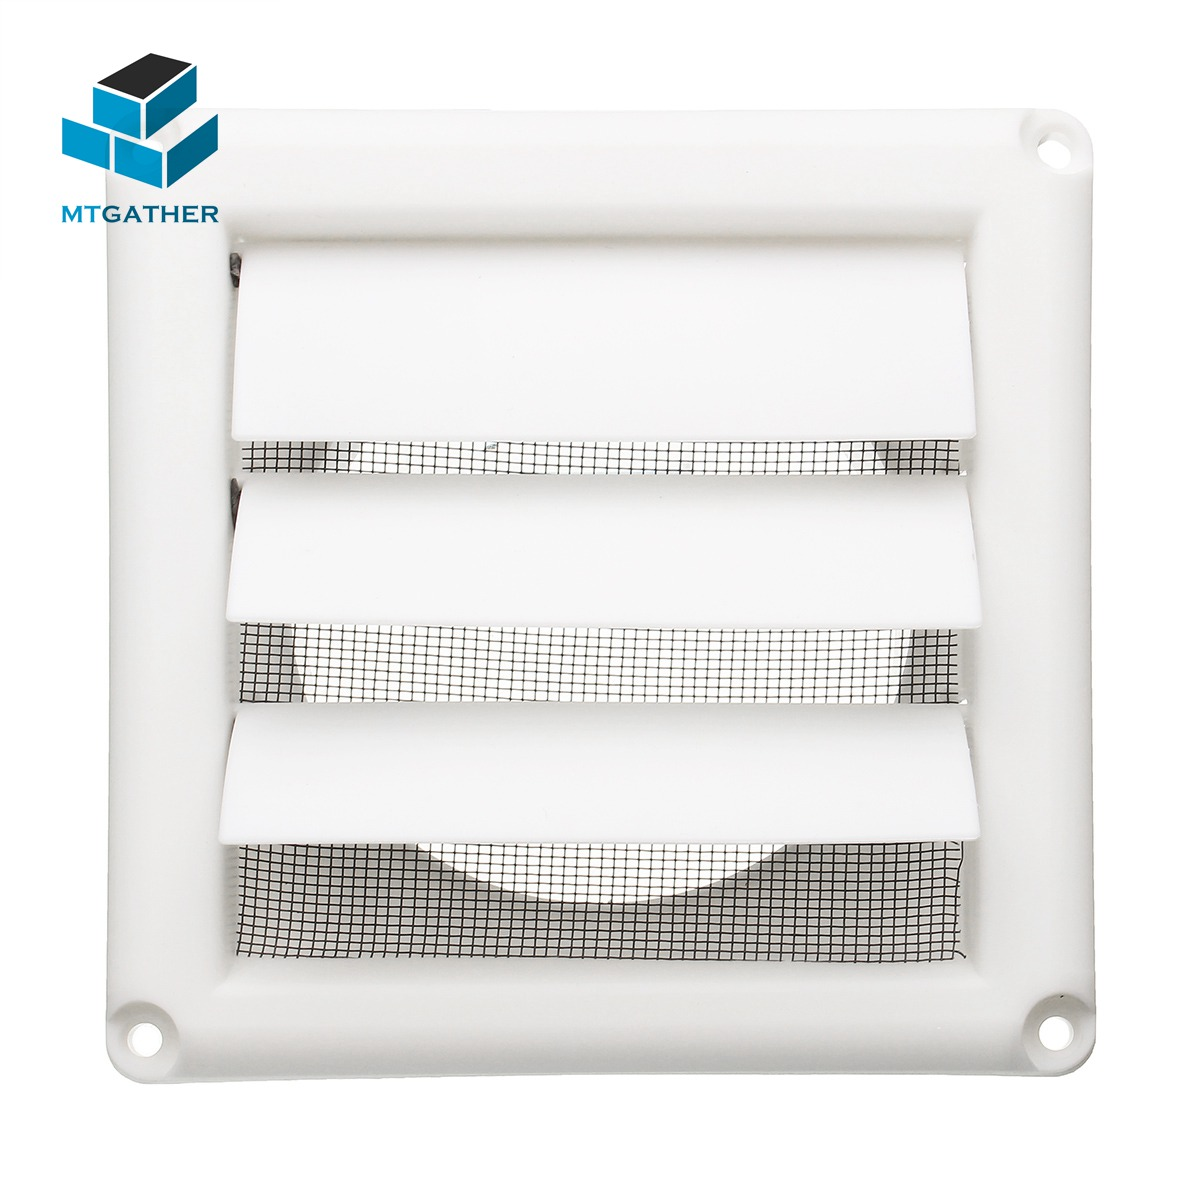 MTGATHER 5.6inch White Plastic Louvre Air Vent Grille With Adjustable Flyscreen Cover Heating Cooling & Vents Vents